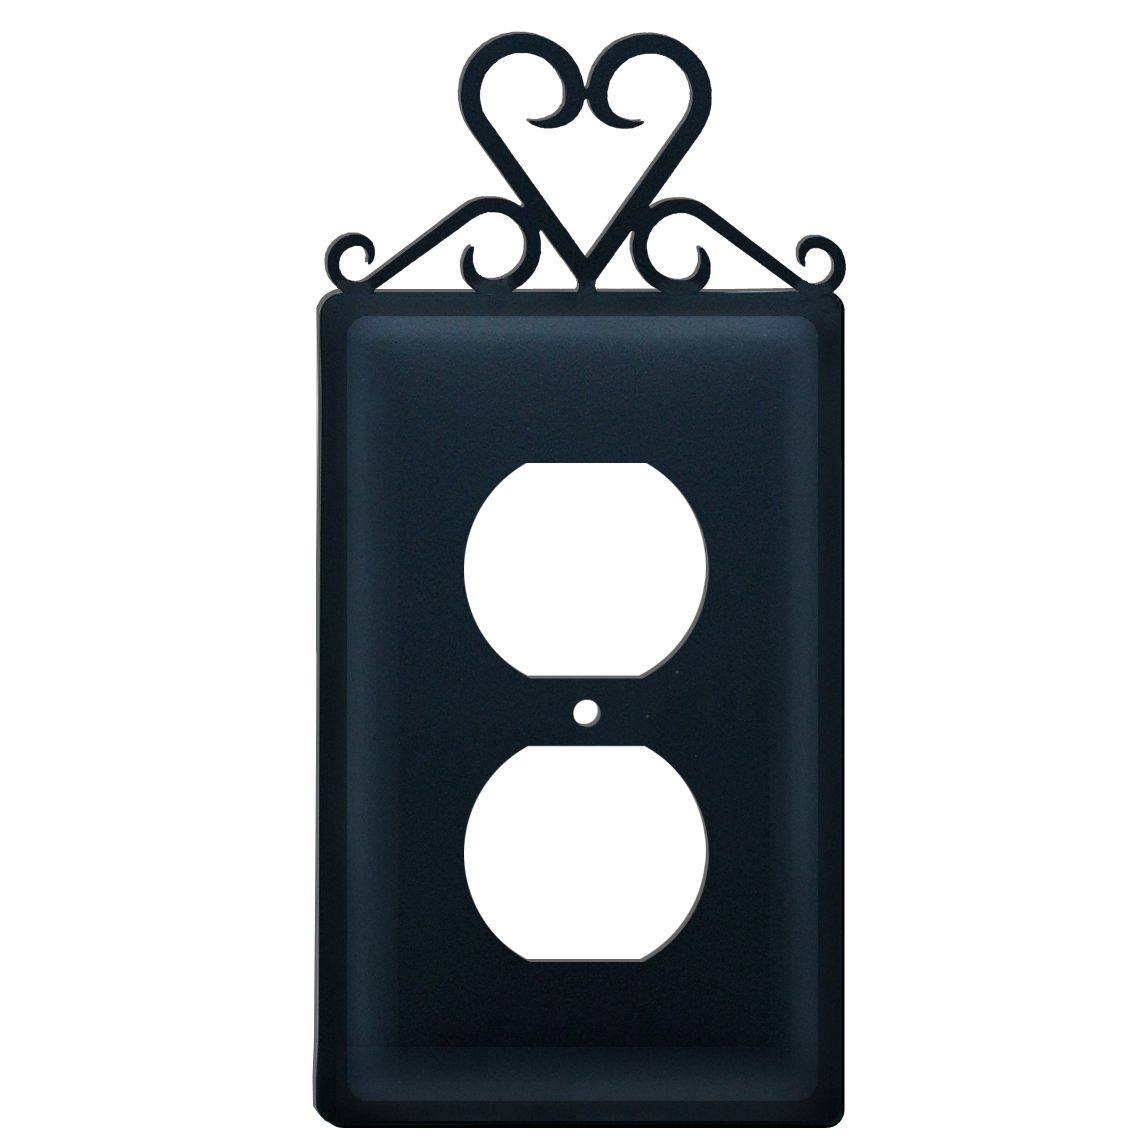 Wrought Iron Single Outlet Wall Plate. This decorative electrical outlet cover plate features a Heart  sc 1 st  Pinterest & Wrought Iron Single Outlet Wall Plate. This decorative electrical ...